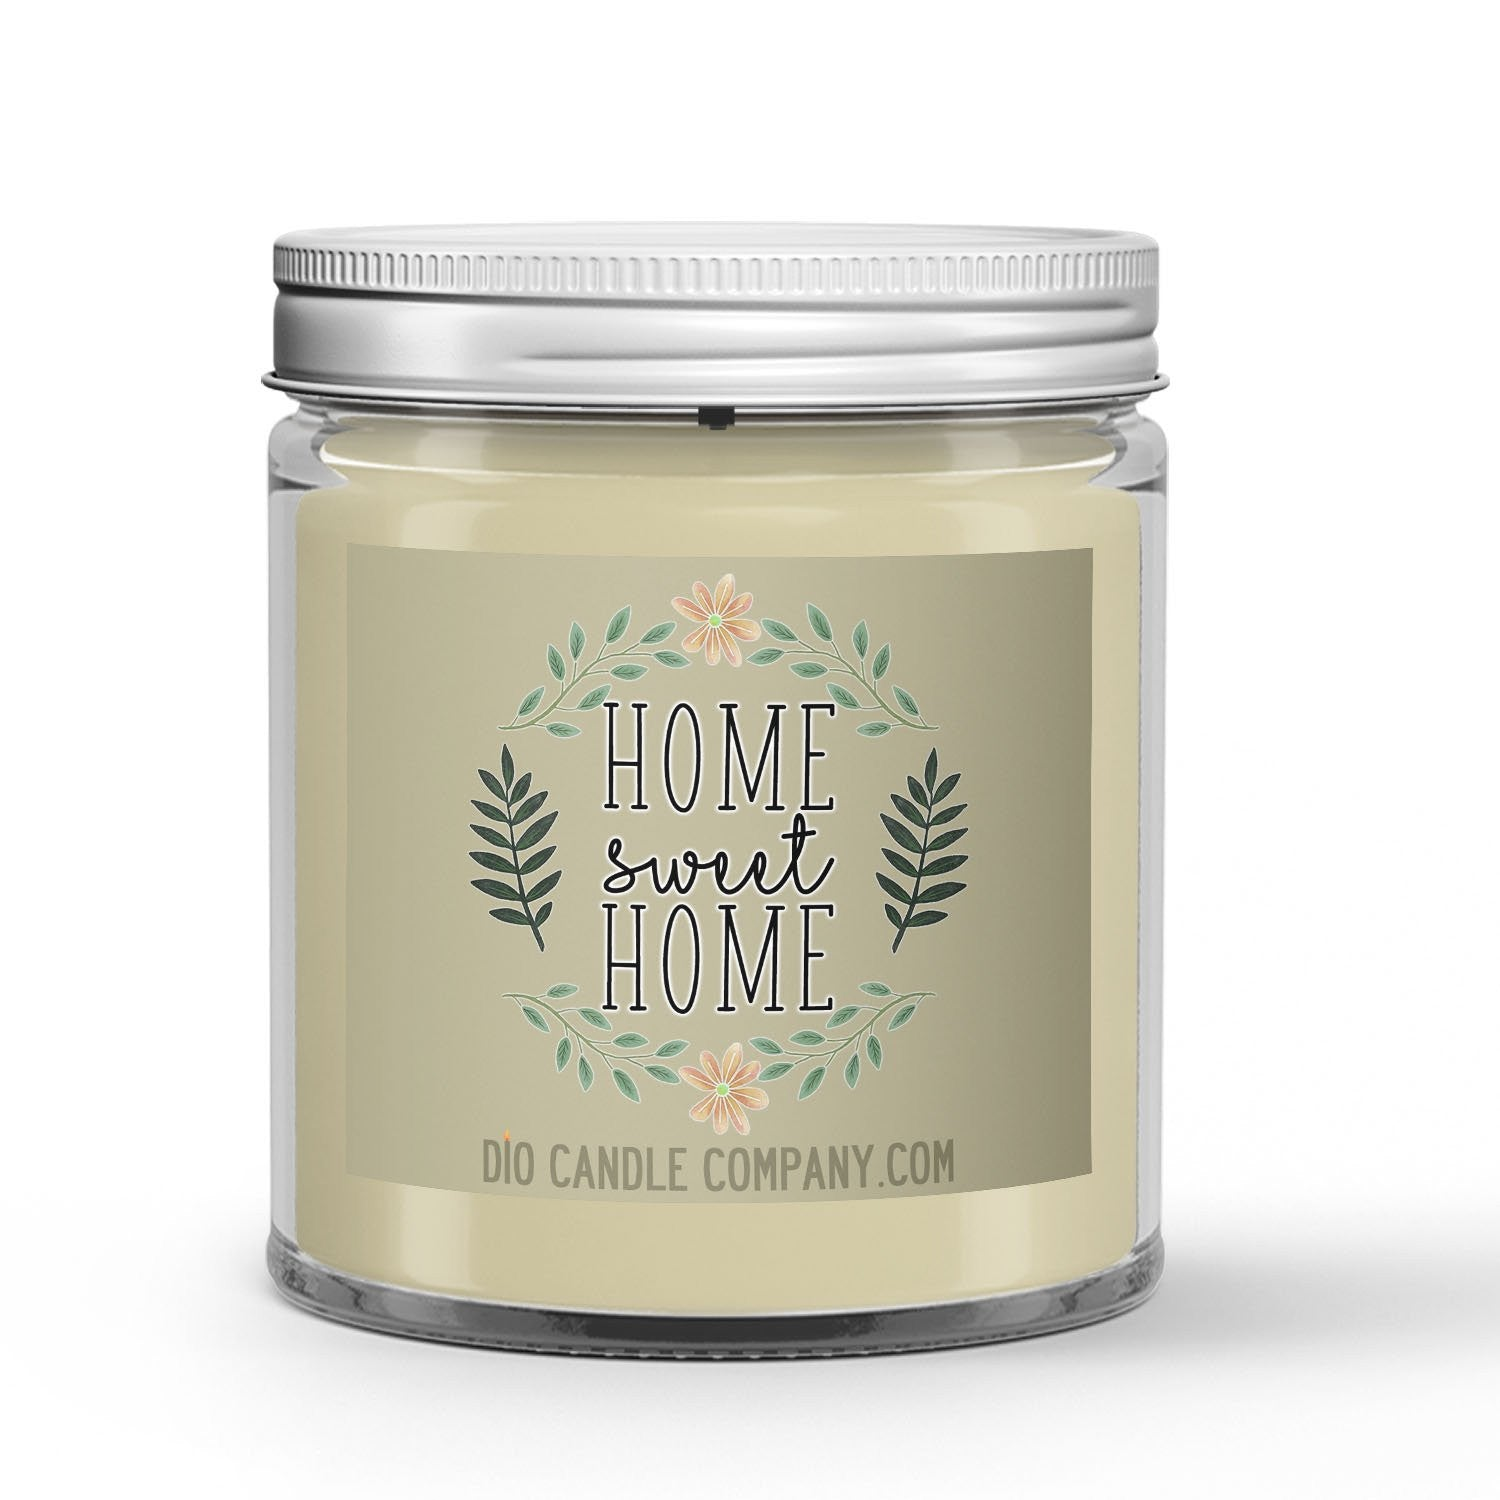 Home Sweet Home Candle - Blueberry Pie - Cotton - 4oz Very Adorable Size Candle® - Dio Candle Company